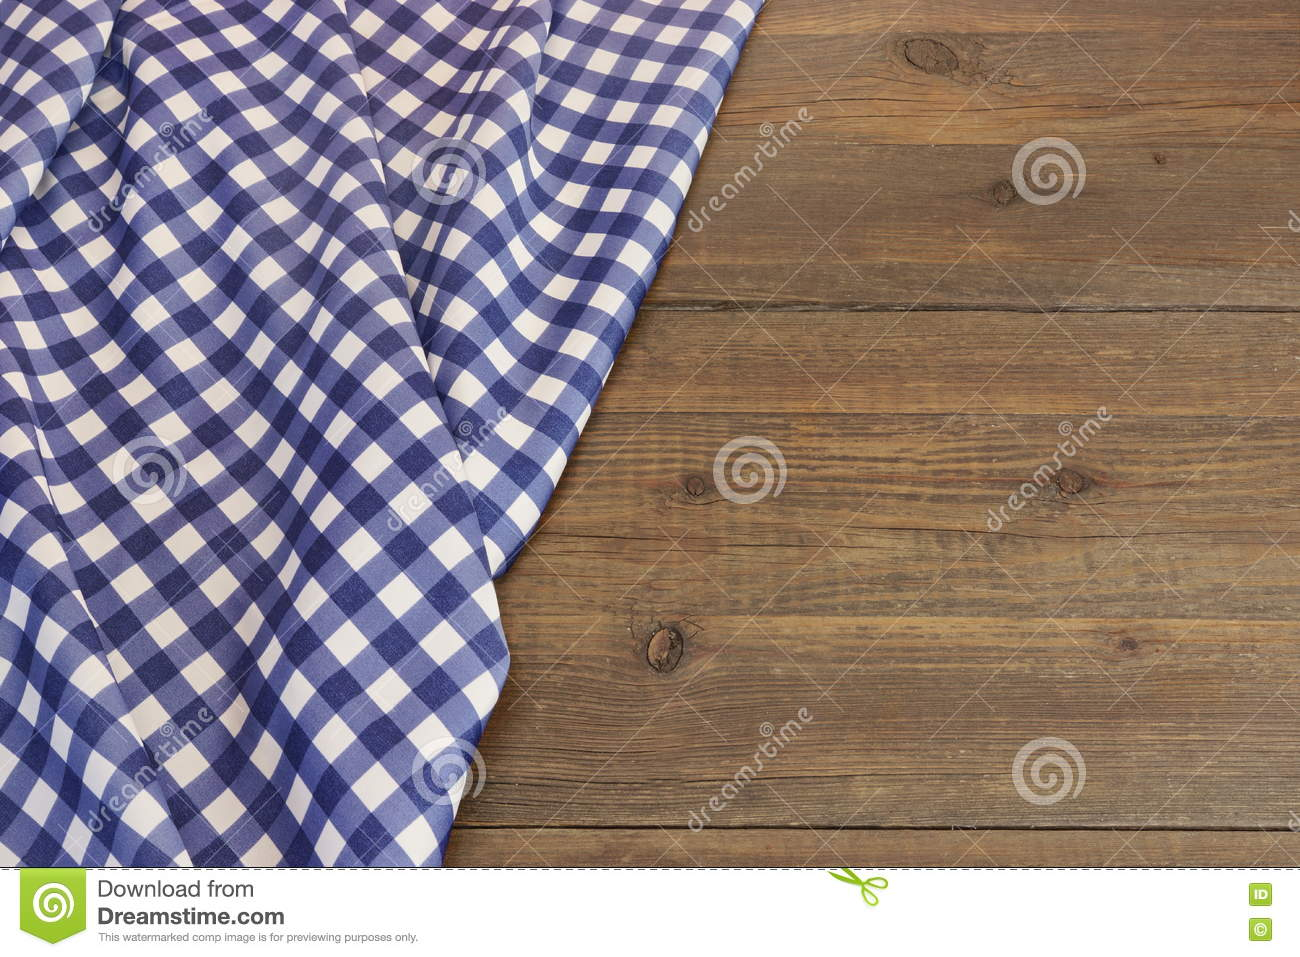 Rustic Picnic Wooden Table With Blue Folded Checkered Tablecloth Royalty  Free Stock Images